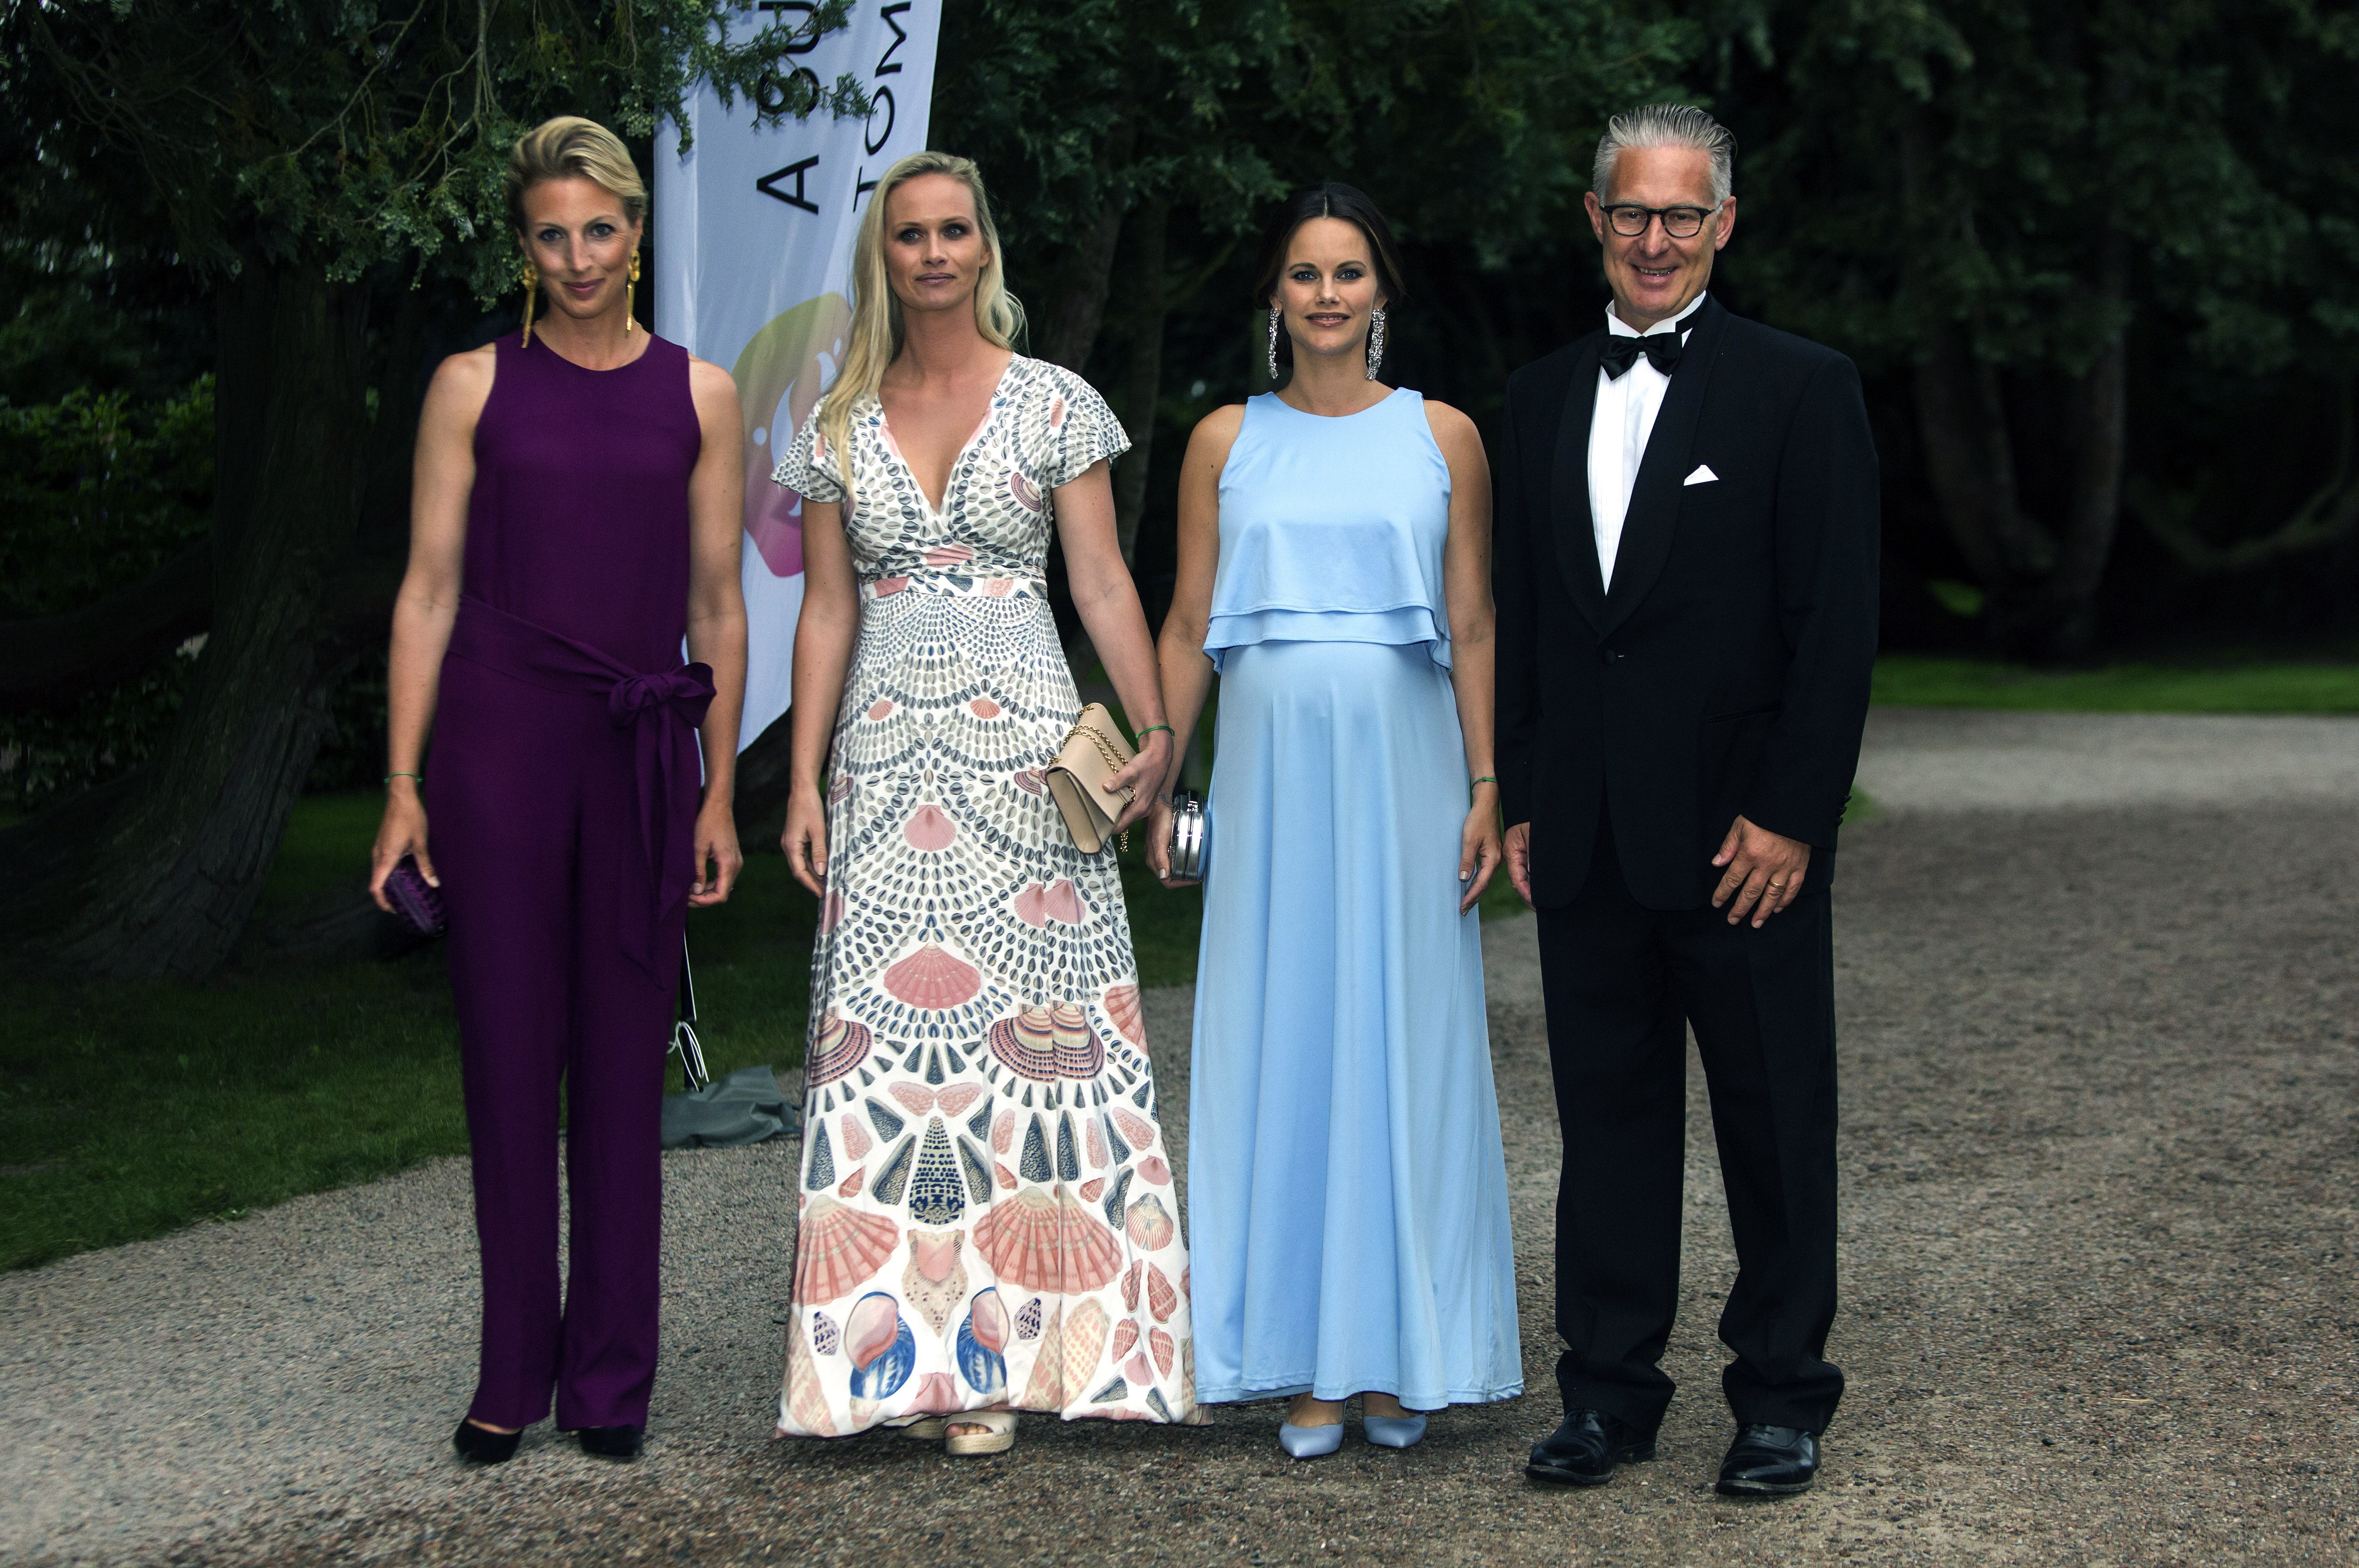 Mother of one, Princess Sofia of Sweden took a style tip from her sister-in-law Princess Madeline on an official outing last month in Bastad.<br> <br> In a pale blue gown, the wife of Prince Carl Philip drew attention to her hair and makeup with dazzling earrings and darker lipstick than her usual neutral shades.<br> <br> Princess Sofia gave birth to Prince Gabriel, brother to Prince Alexander, on August 31.en August 2017.